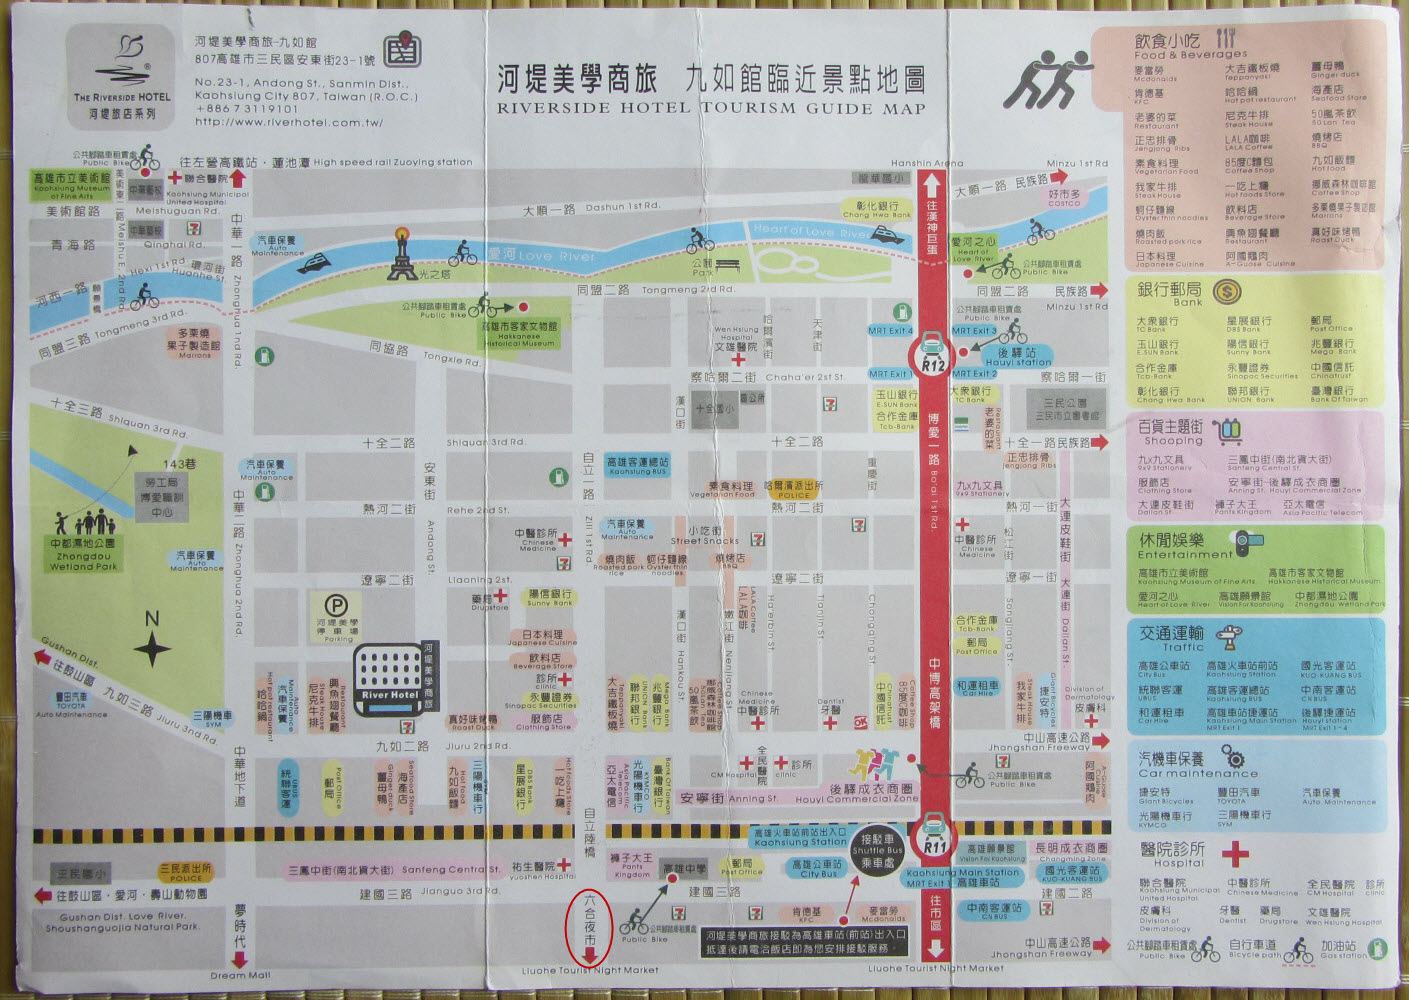 kaohsiung-river-hotel-tourist-guide-map